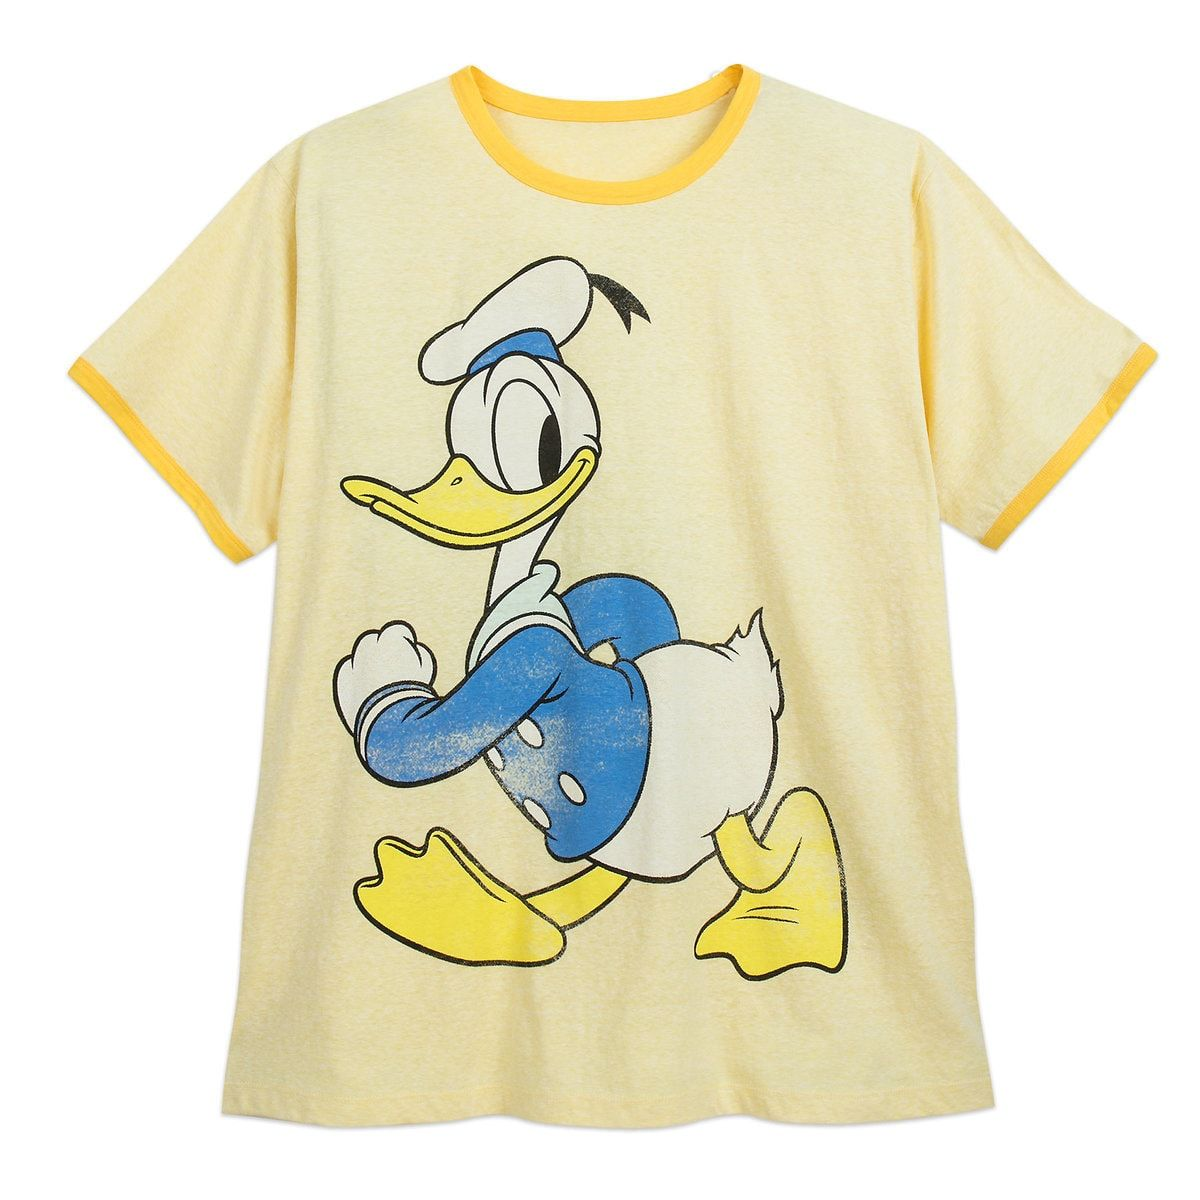 Donald Duck Ringer T Shirt For Men Extended Size Disney Outfits Disney Tees Shirts